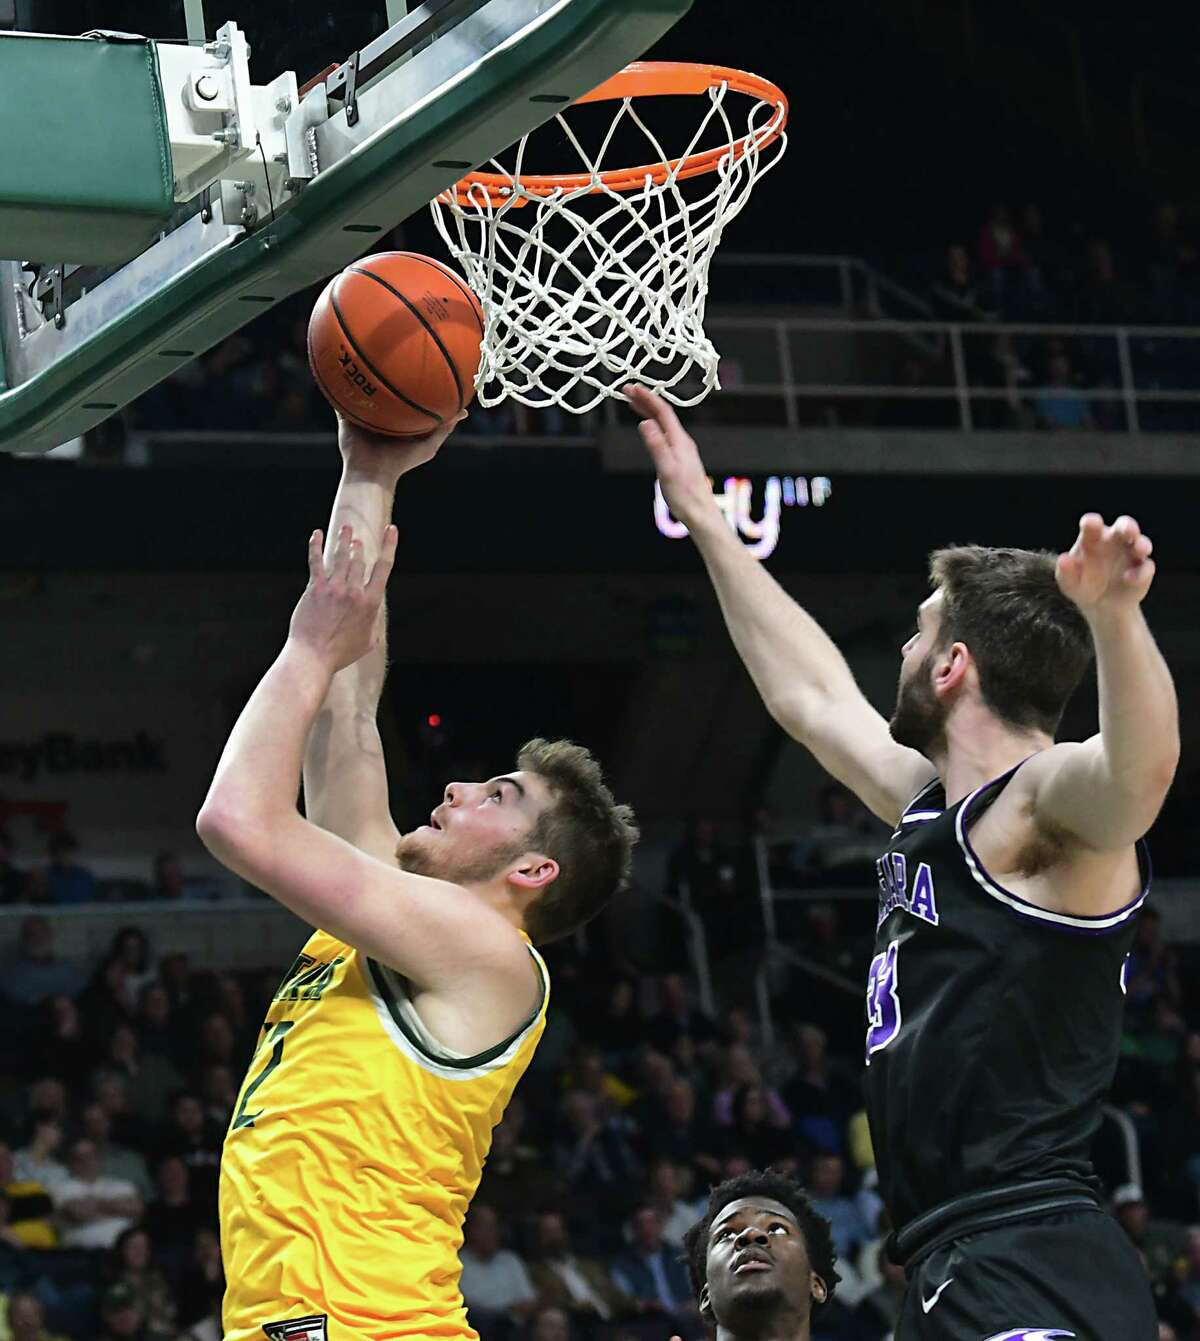 Siena's Kyle Young drives to the basket during a game against Niagara at the Times Union Center on Wednesday, March 4, 2020 in Albany, N.Y. (Lori Van Buren/Times Union)